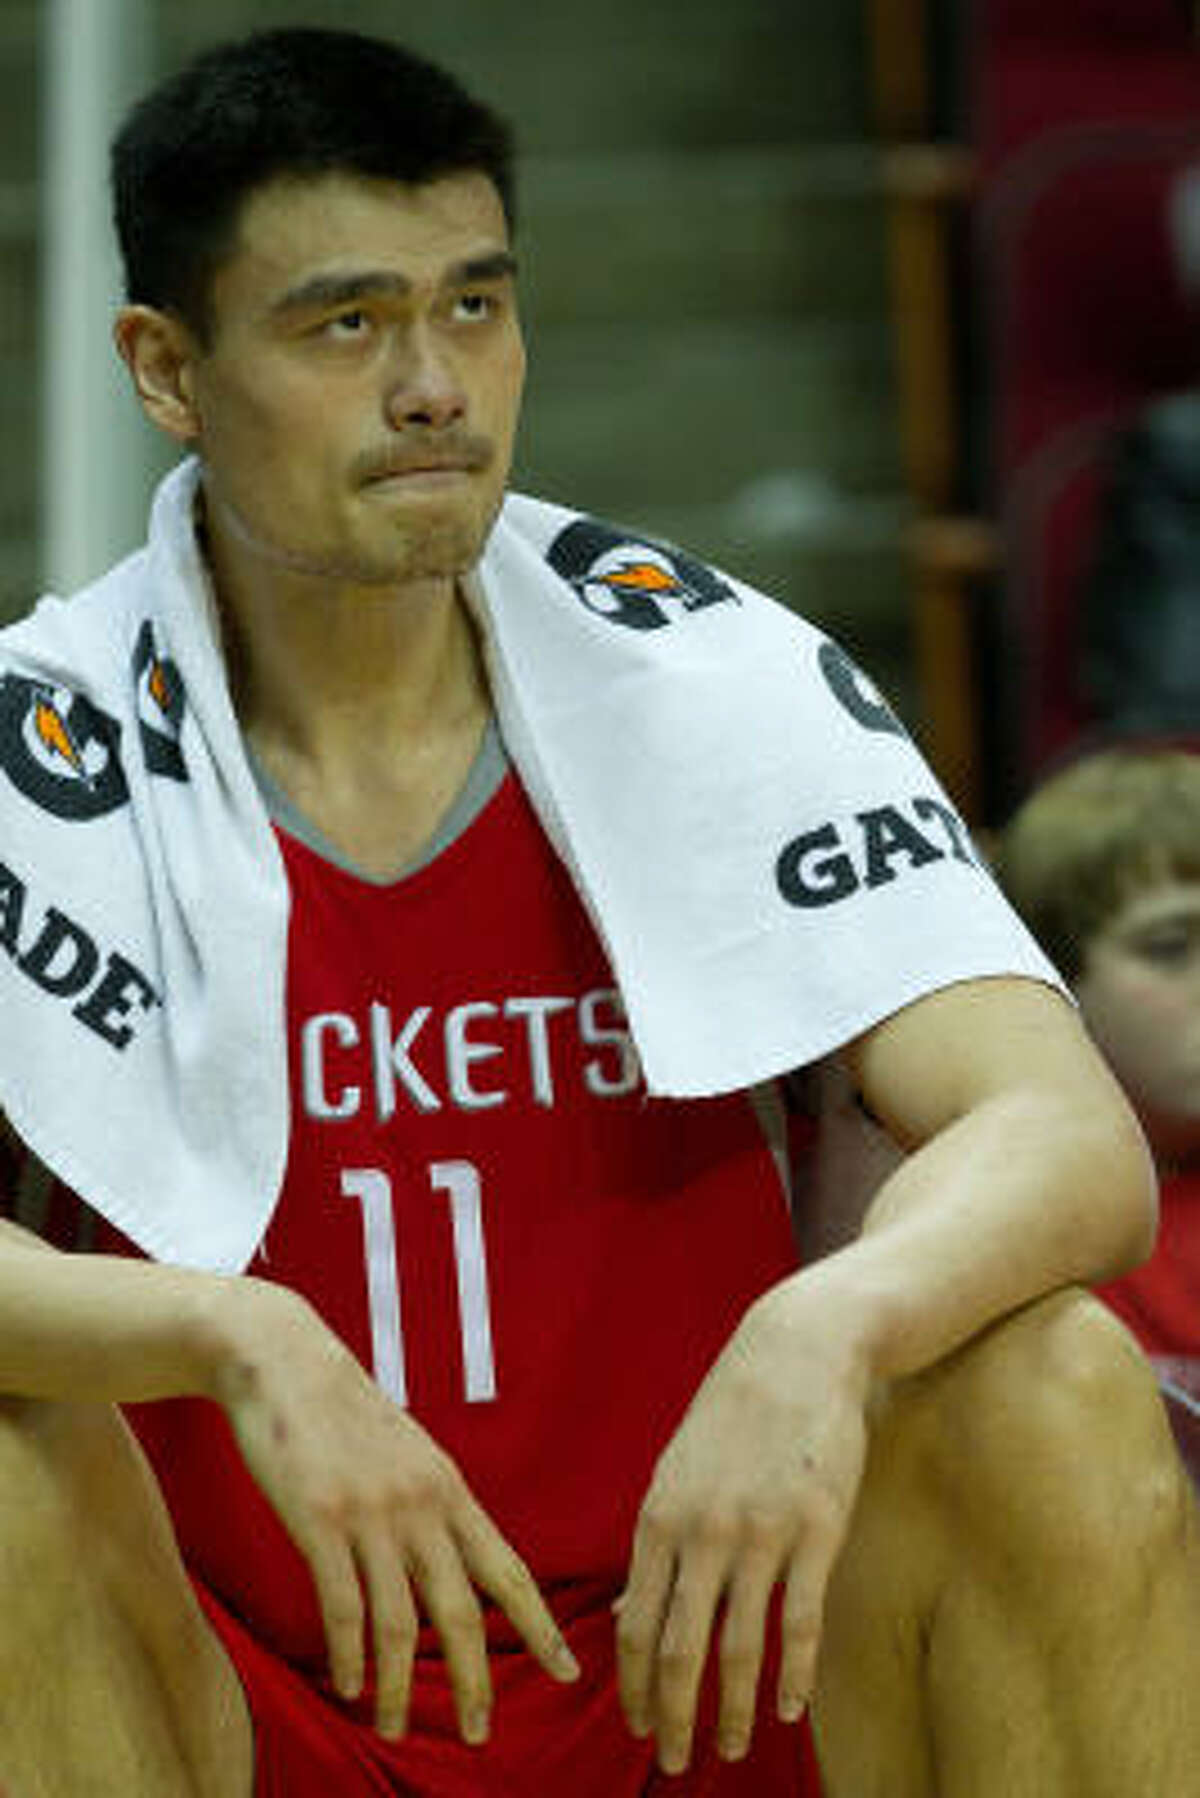 2. The end of the Yao Ming era? After a slow comeback from foot surgery, Yao Ming's season - and possibly his career as a Rocket - ended with another injury. A stress fracture in his left ankle ended his 24-minute-a-game comeback attempt and brought reports the Rockets could trade Yao before the end of this season.